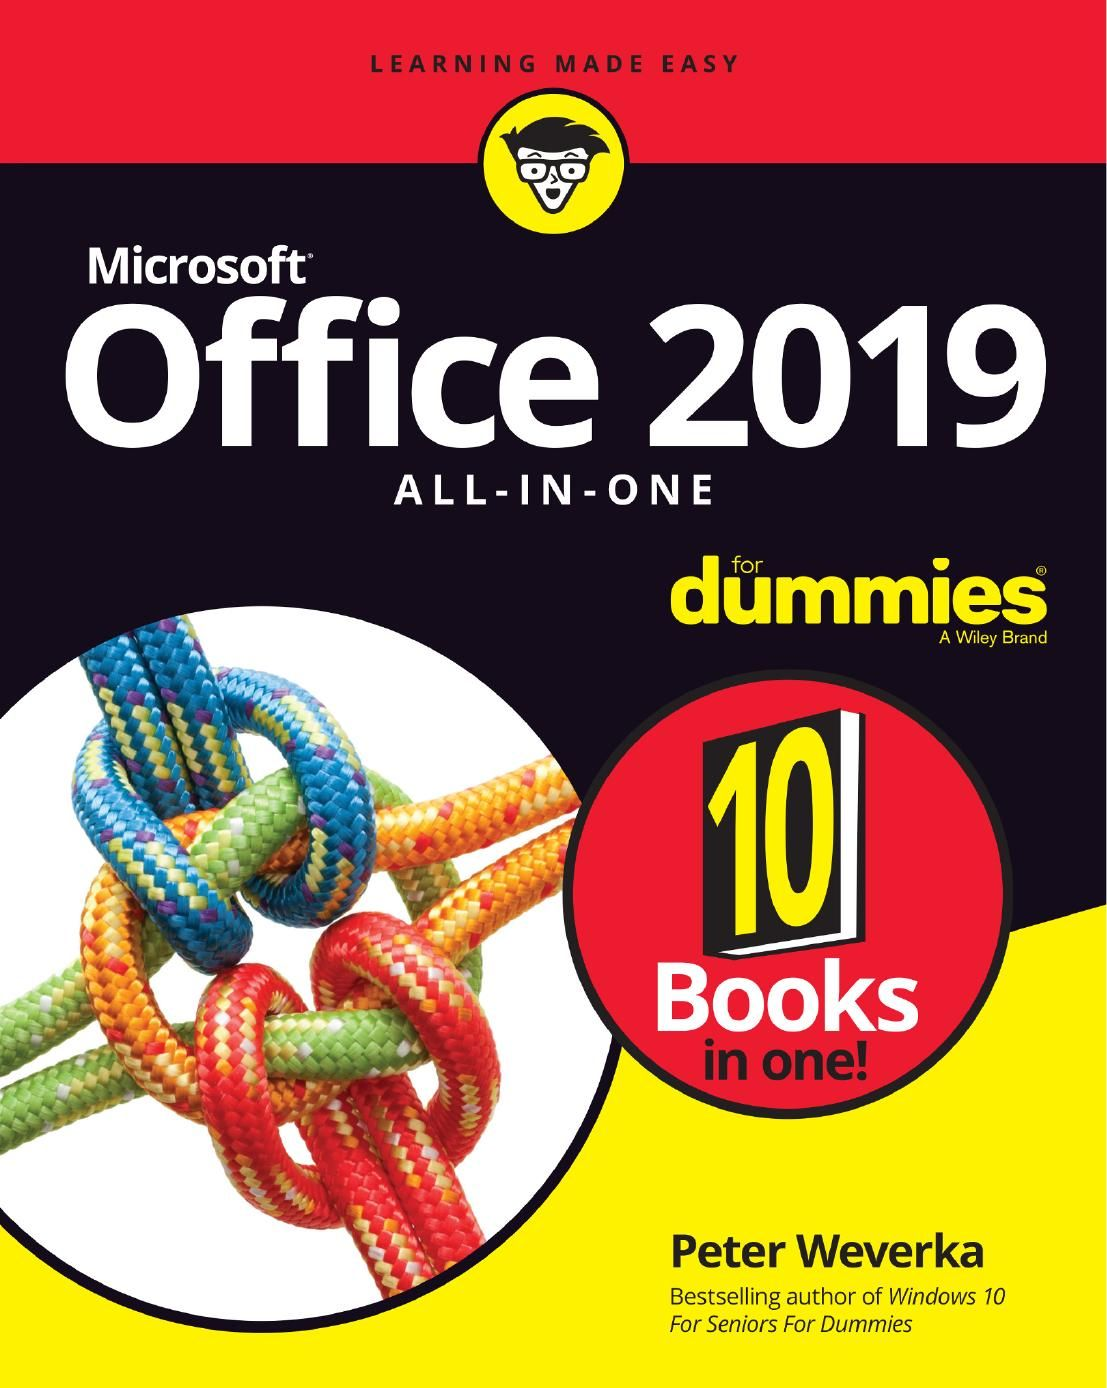 Telecharger Microsoft Office 365 Gratuit Office 2019 All In One For Dummies Pdf Free Download It E Books